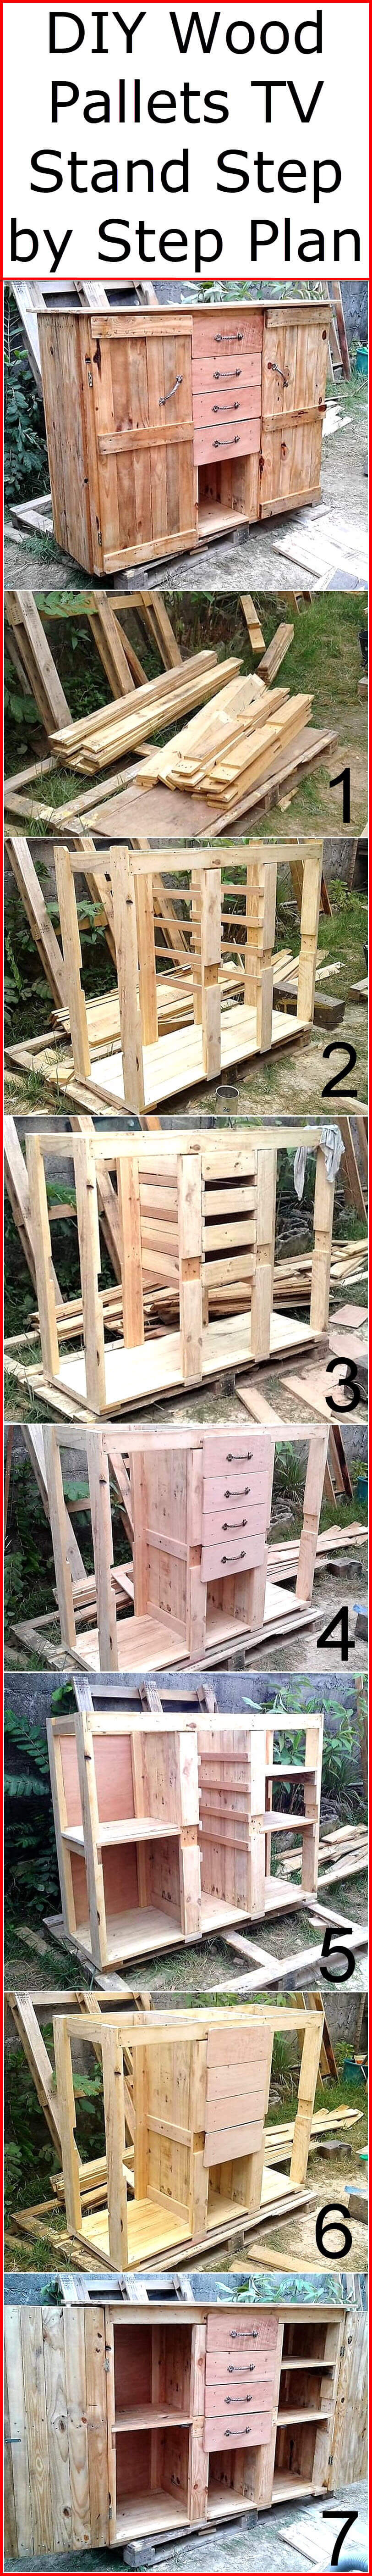 diy wood pallets tv stand step by step plan wood pallet